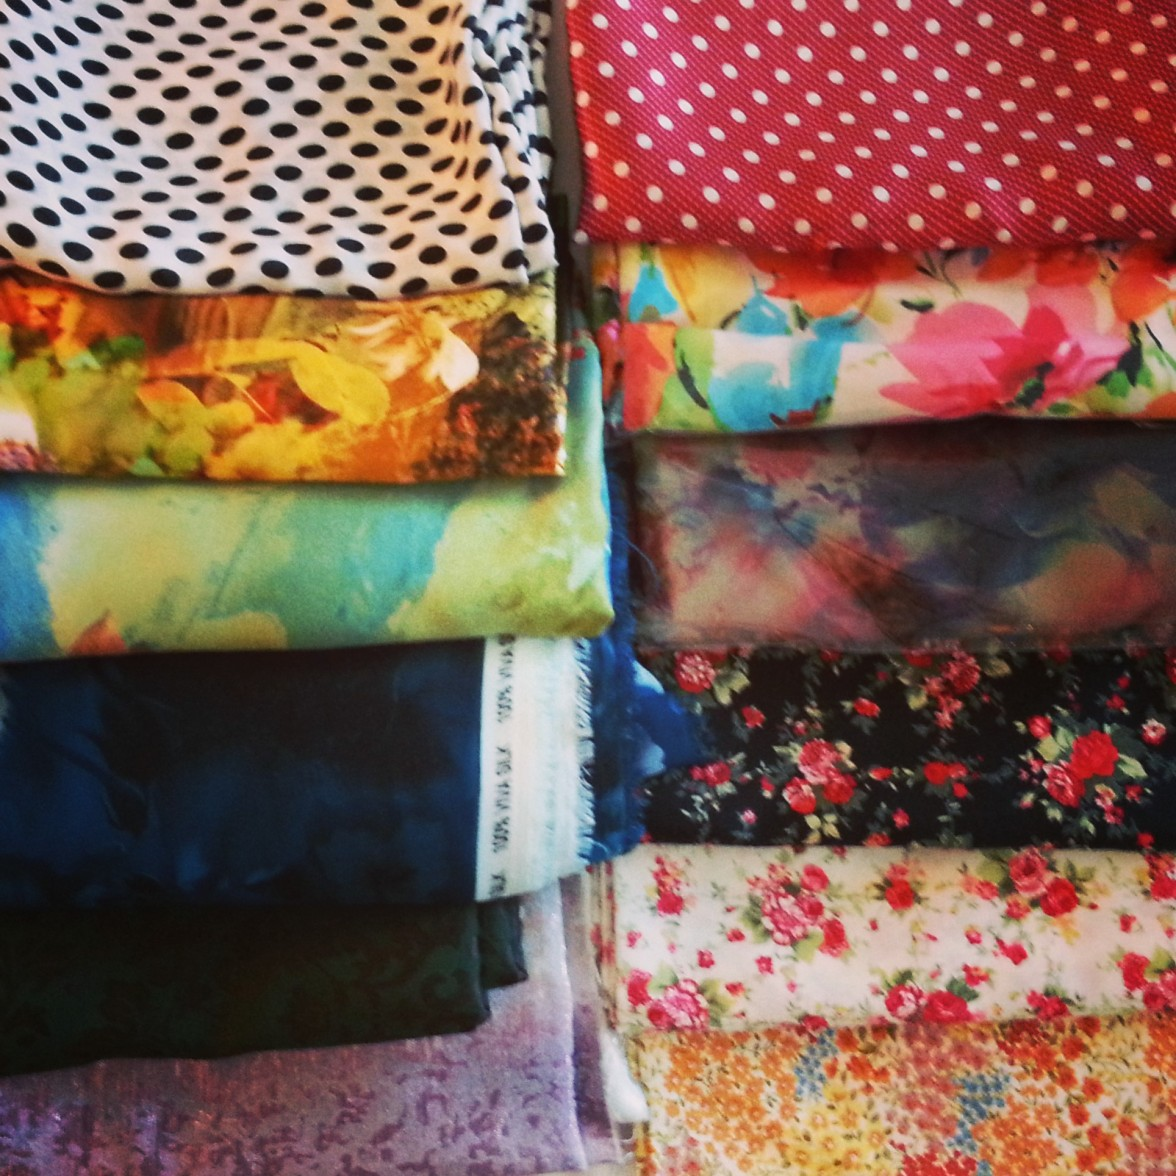 Fabric from Nilai-3 Wholesale District, Malaysia